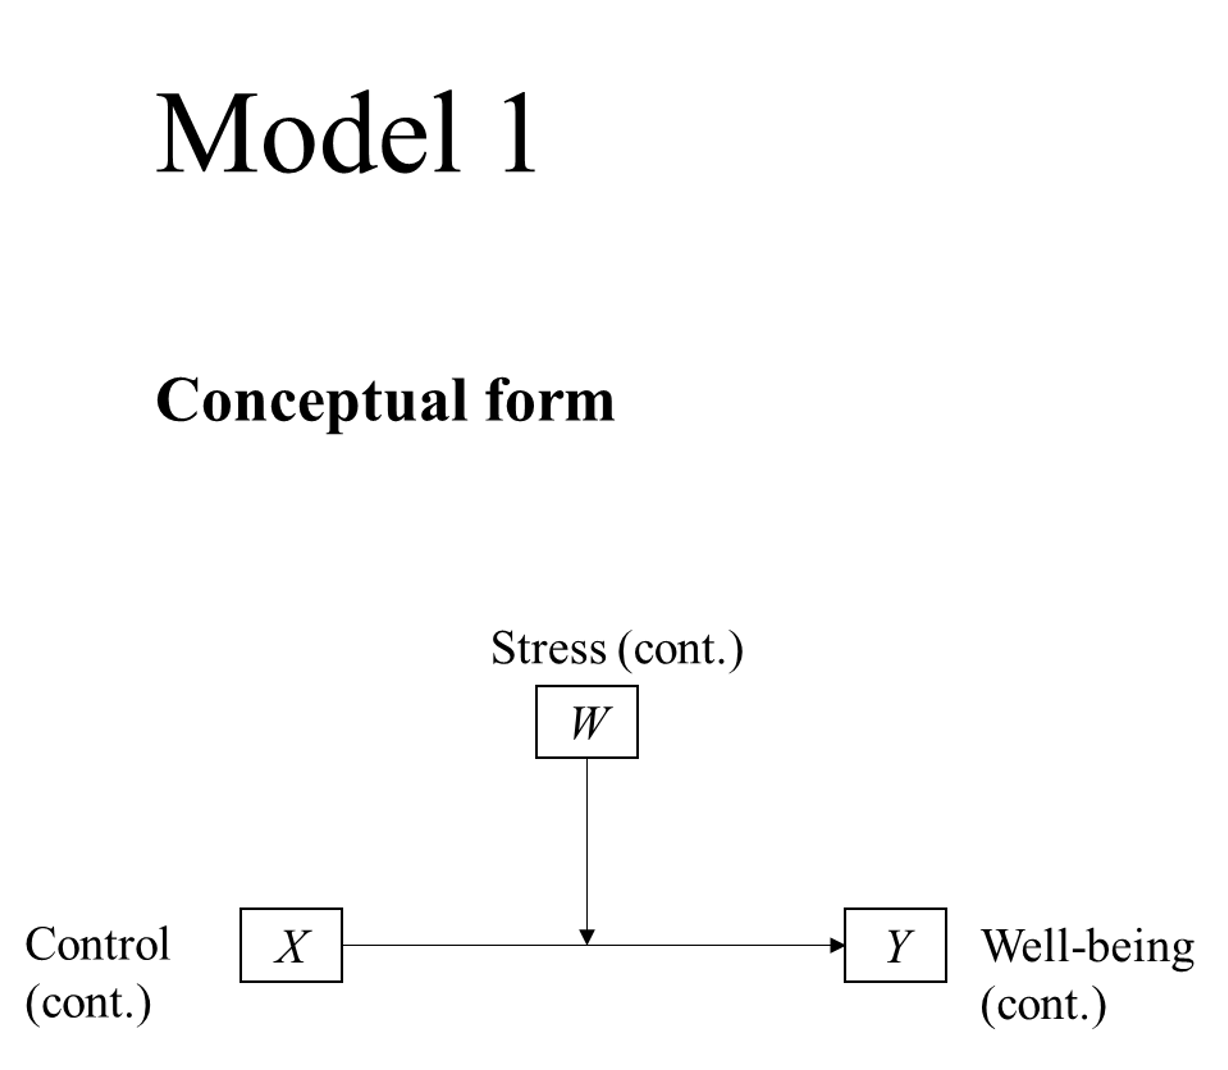 PRODUCT V3 Model 1 Moderation (cont IV on x-axis - cont W in legend)